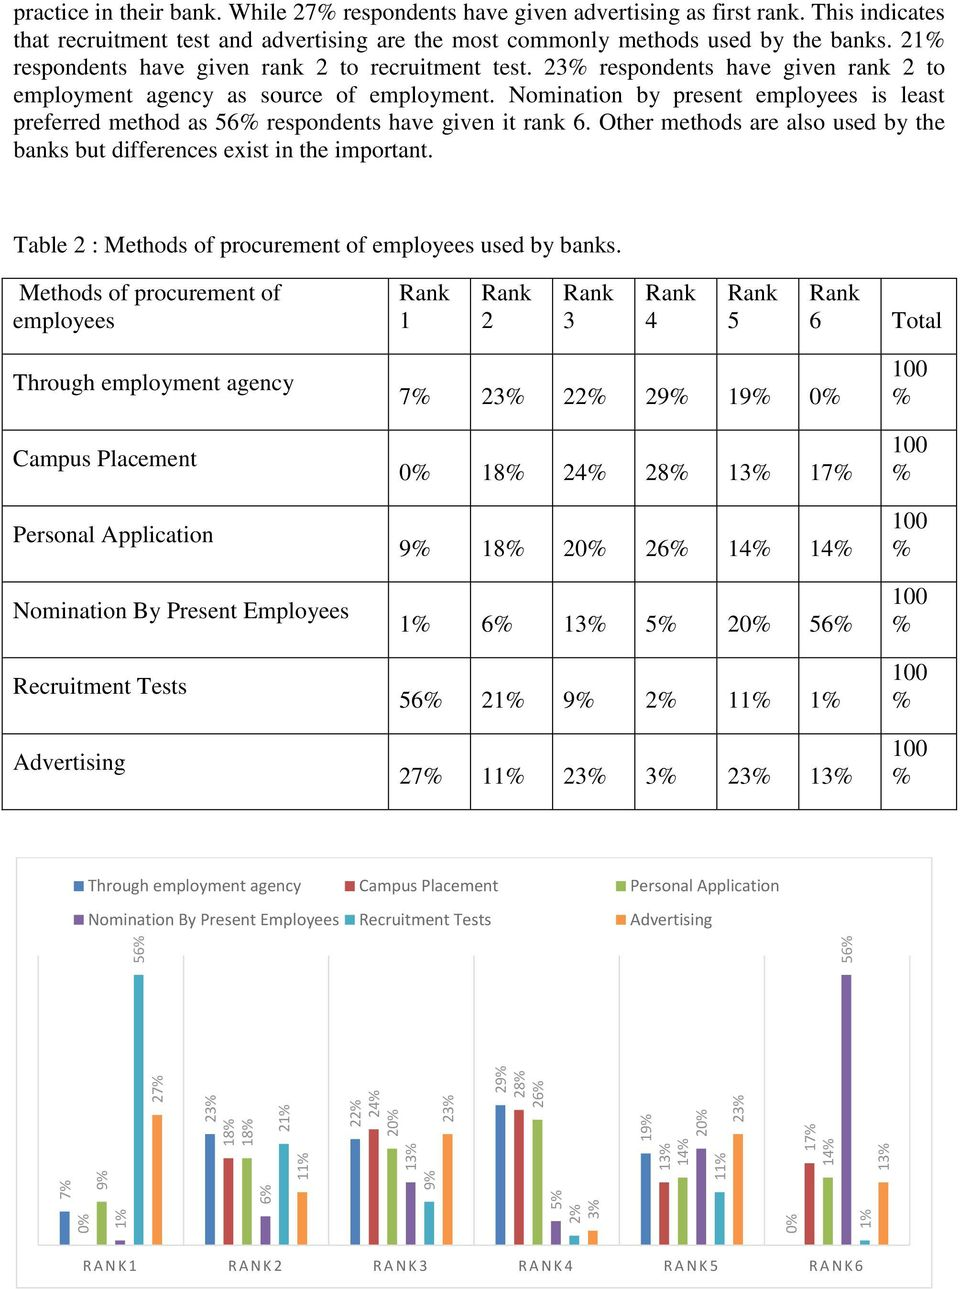 23 respondents have given rank 2 to employment agency as source of employment. Nomination by present employees is least preferred method as 56 respondents have given it rank 6.